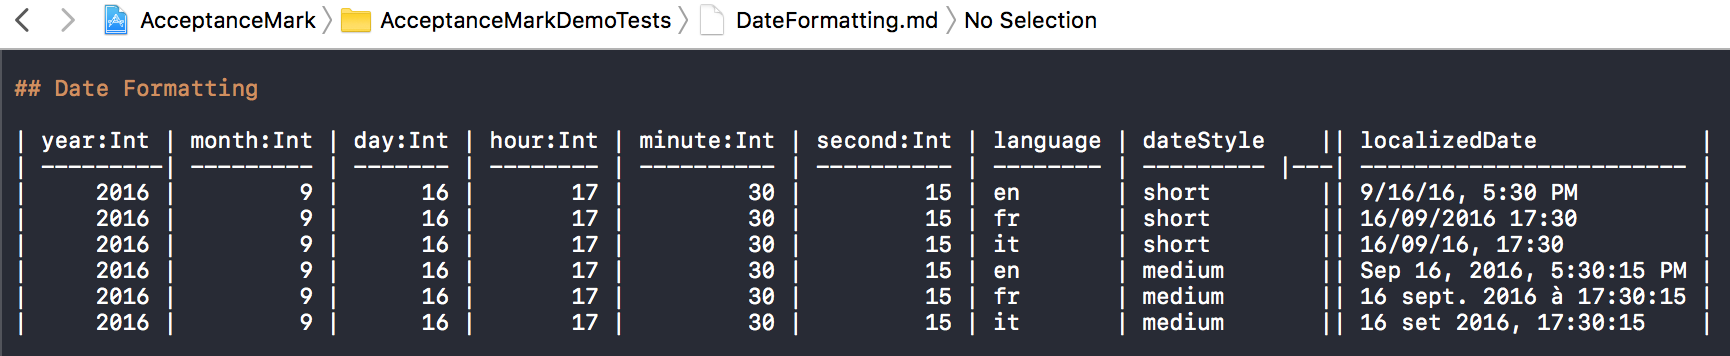 DateFormatting.md file